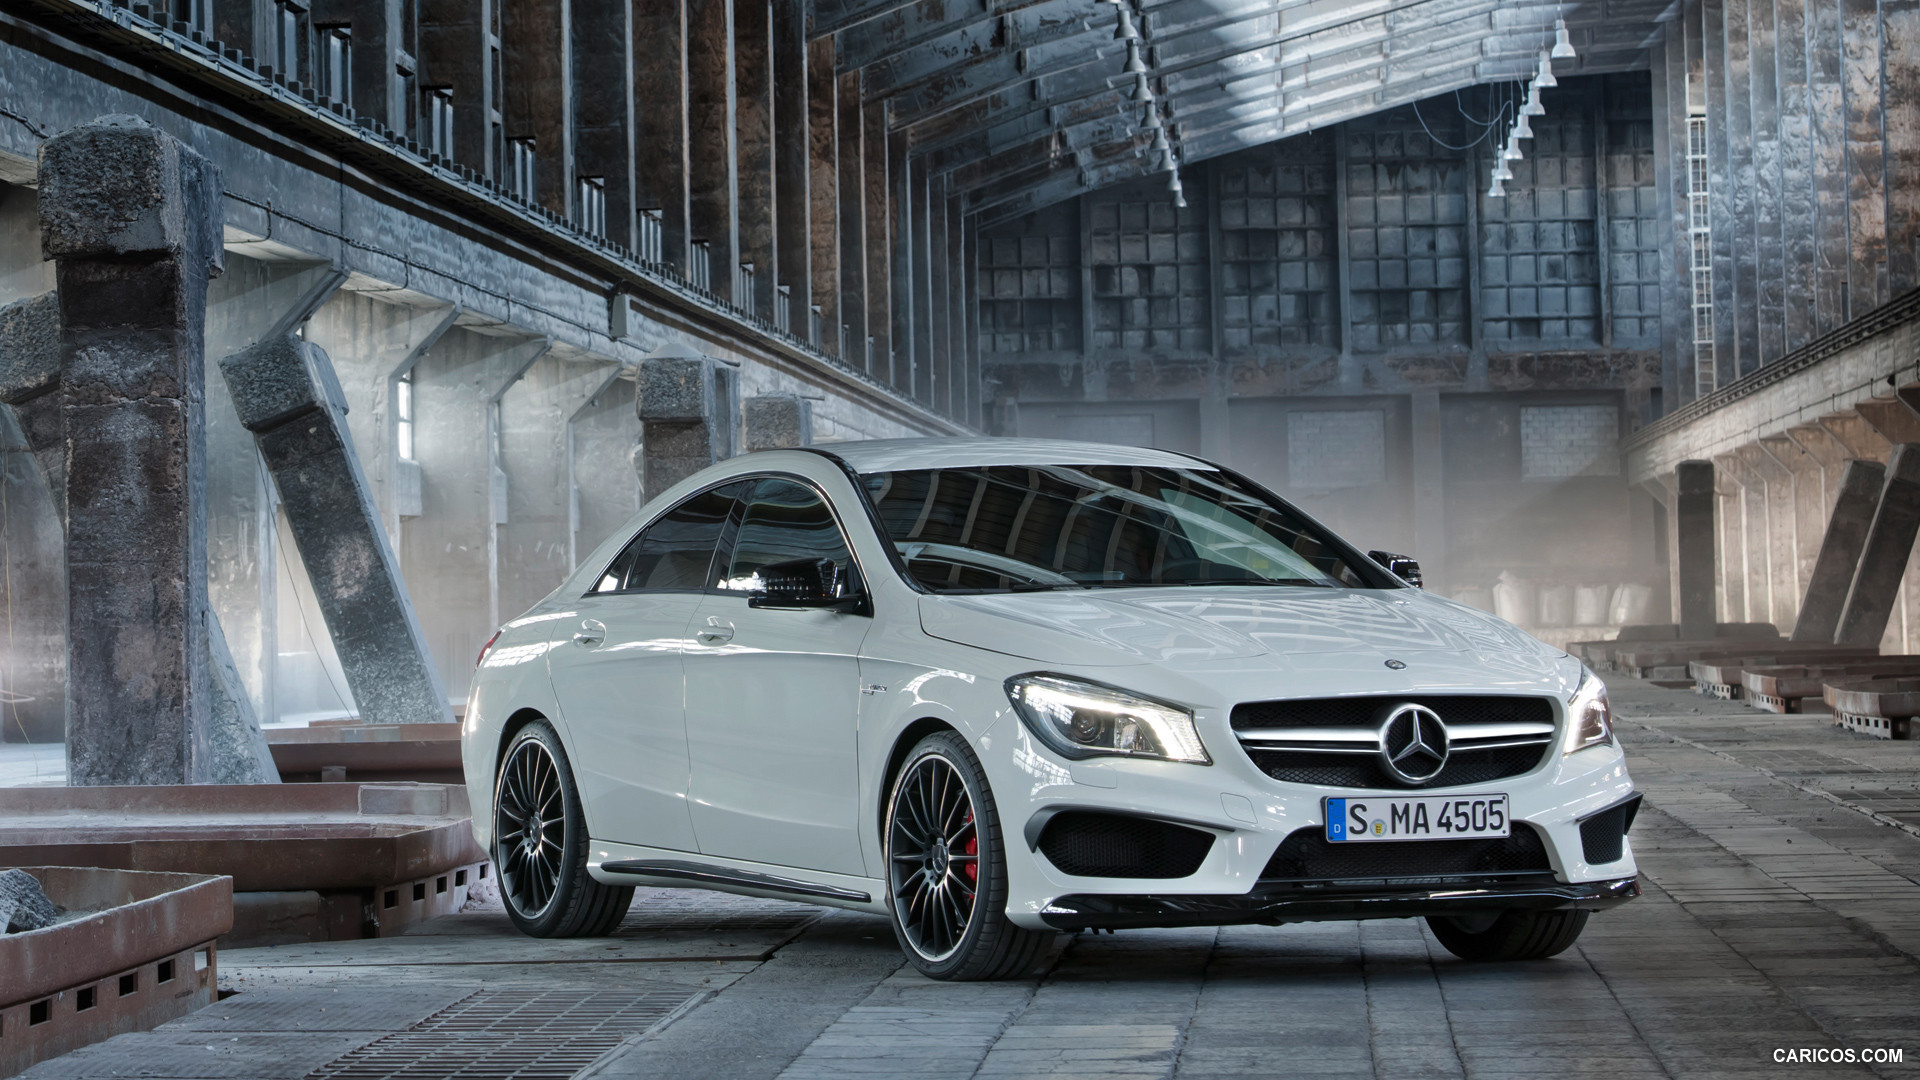 Mercedes benz cla 45 amg photos photogallery with 42 for Mercedes benz cla 45